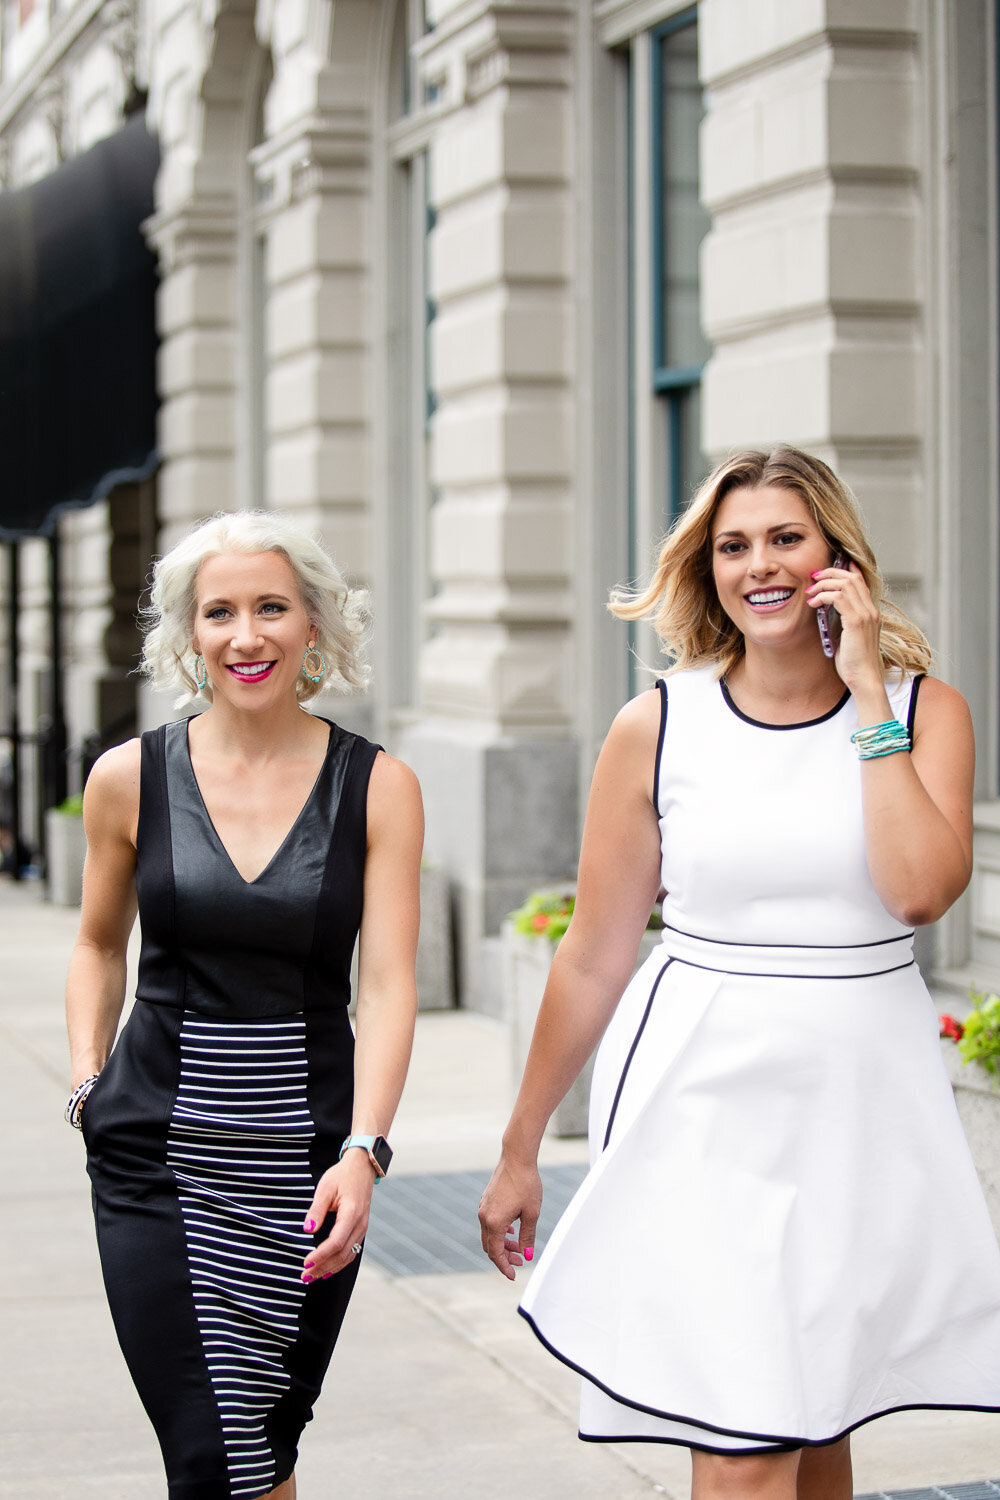 Two women colleagues walking down the street, one on the phone